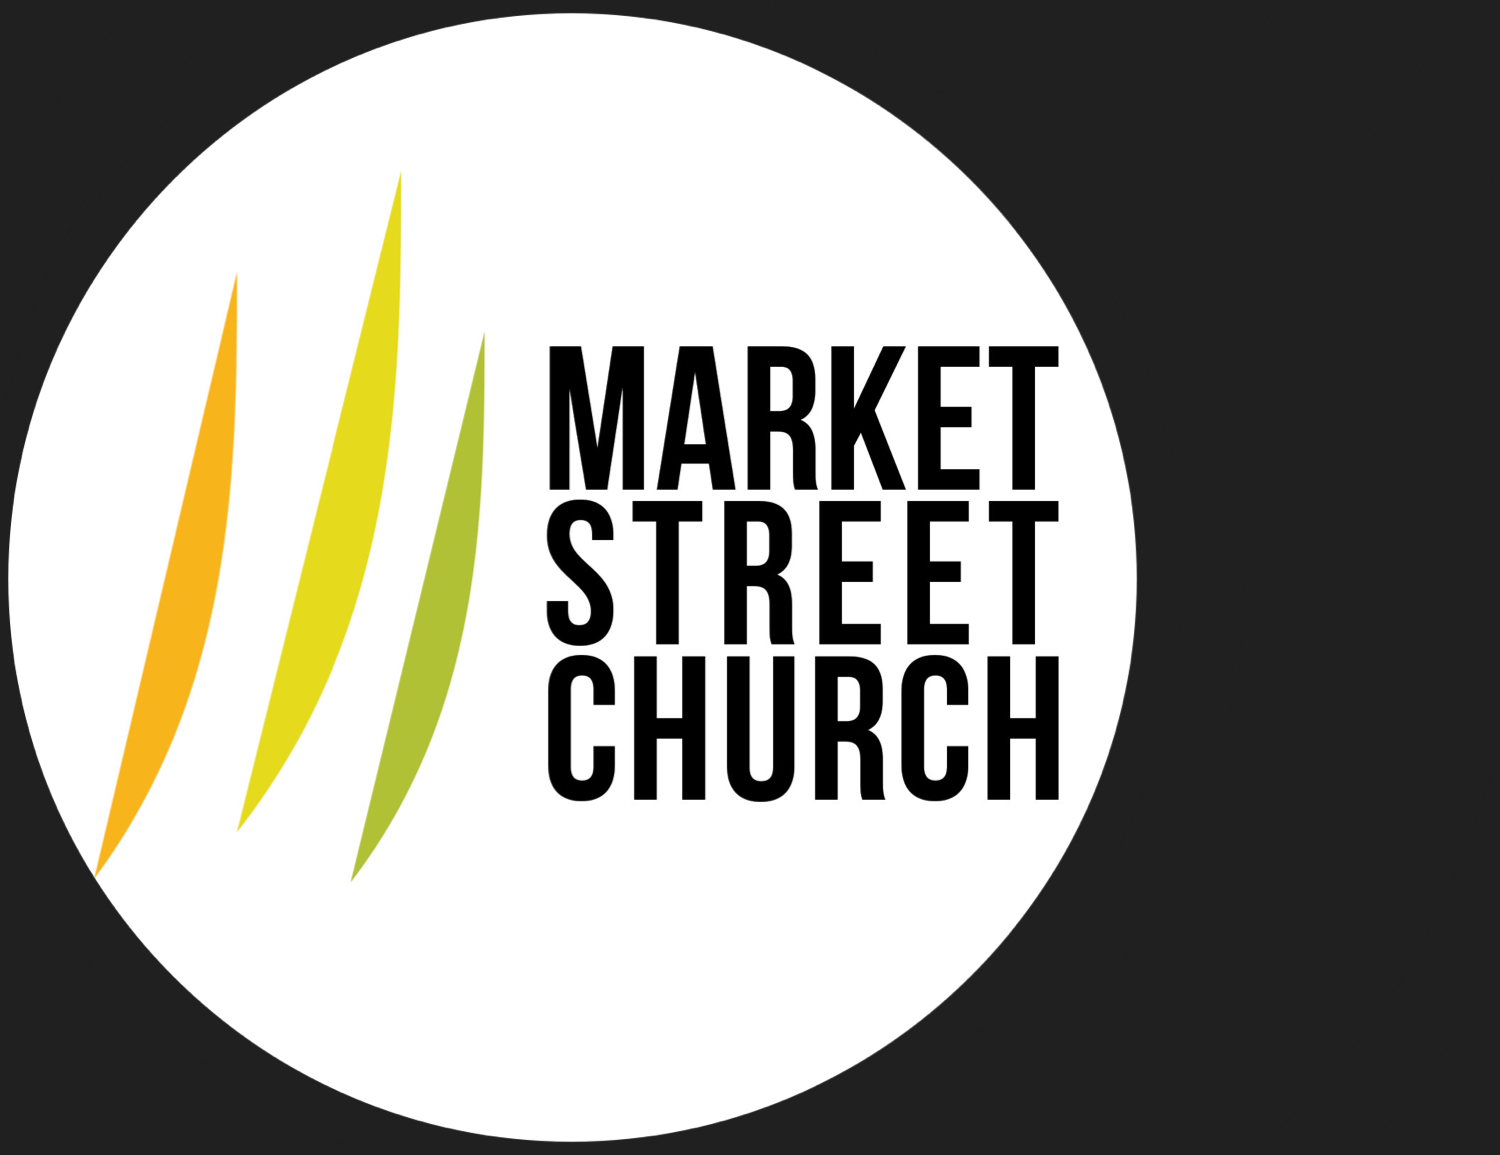 Market Street Church